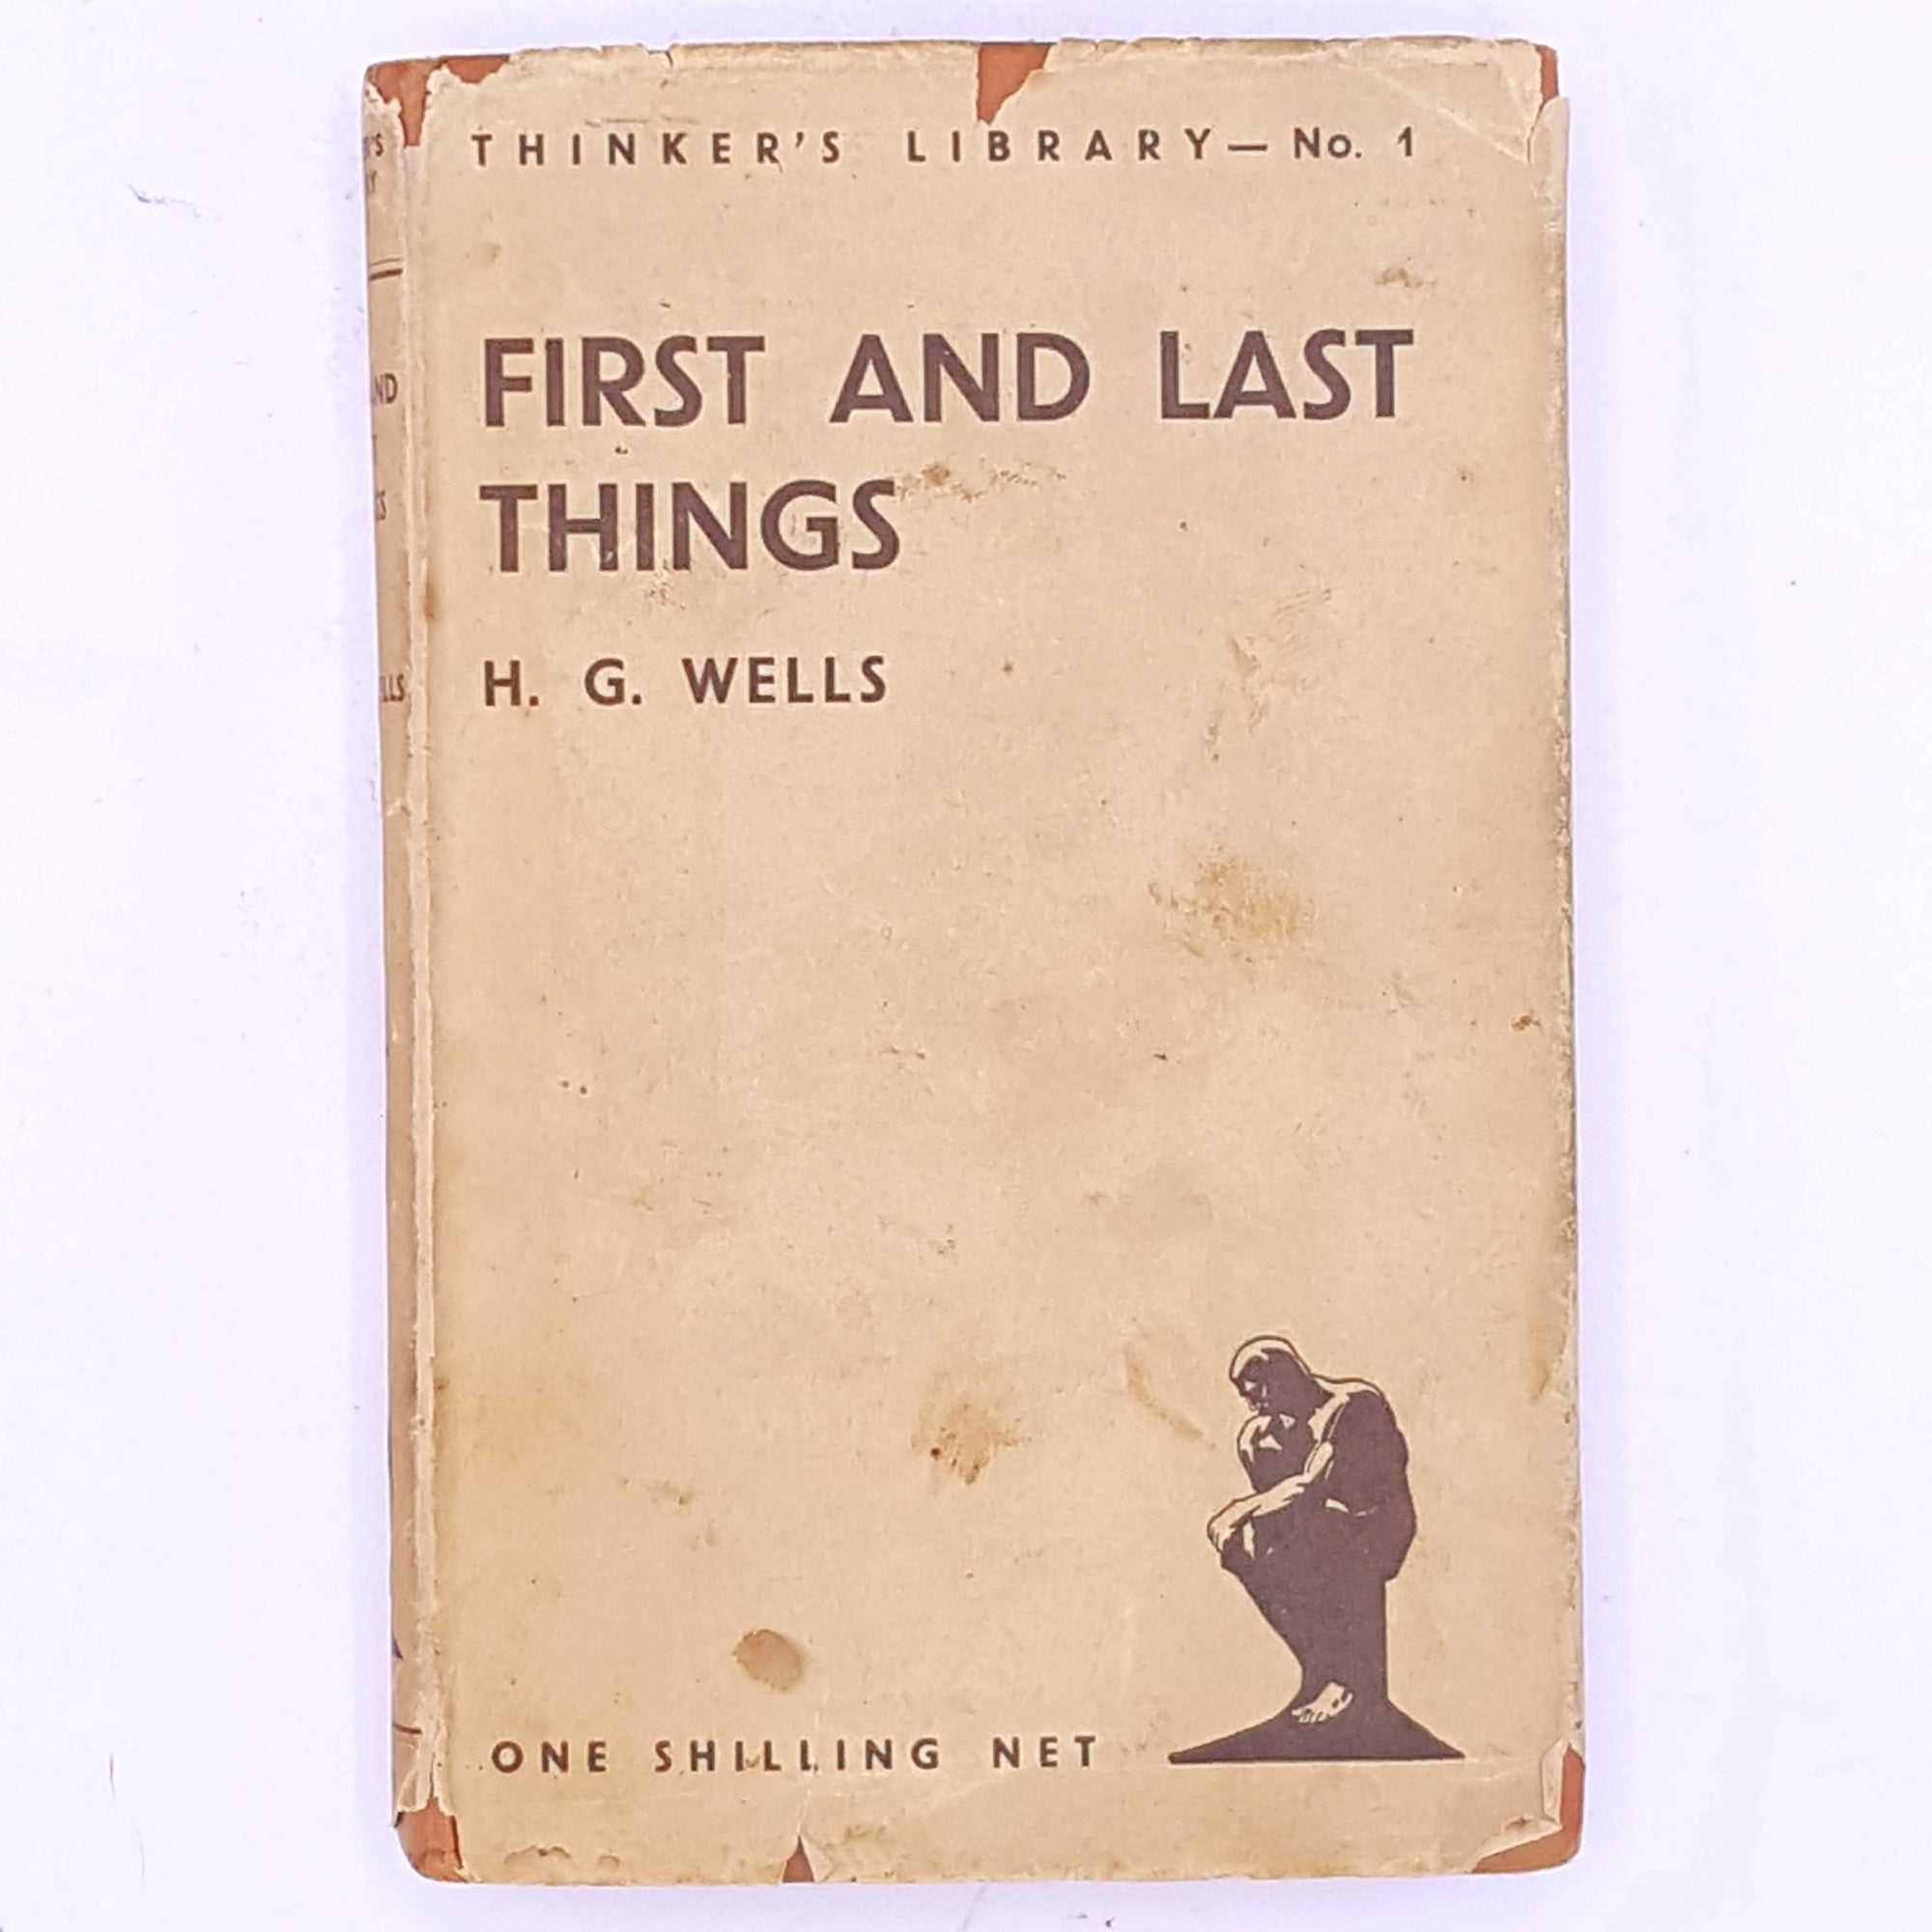 decorative-H.G.-Wells- thrift-science-fiction-First-and-Last-Things-country-house-library-classic-patterned-short-stories- antique-old-short-story-vintage-books-